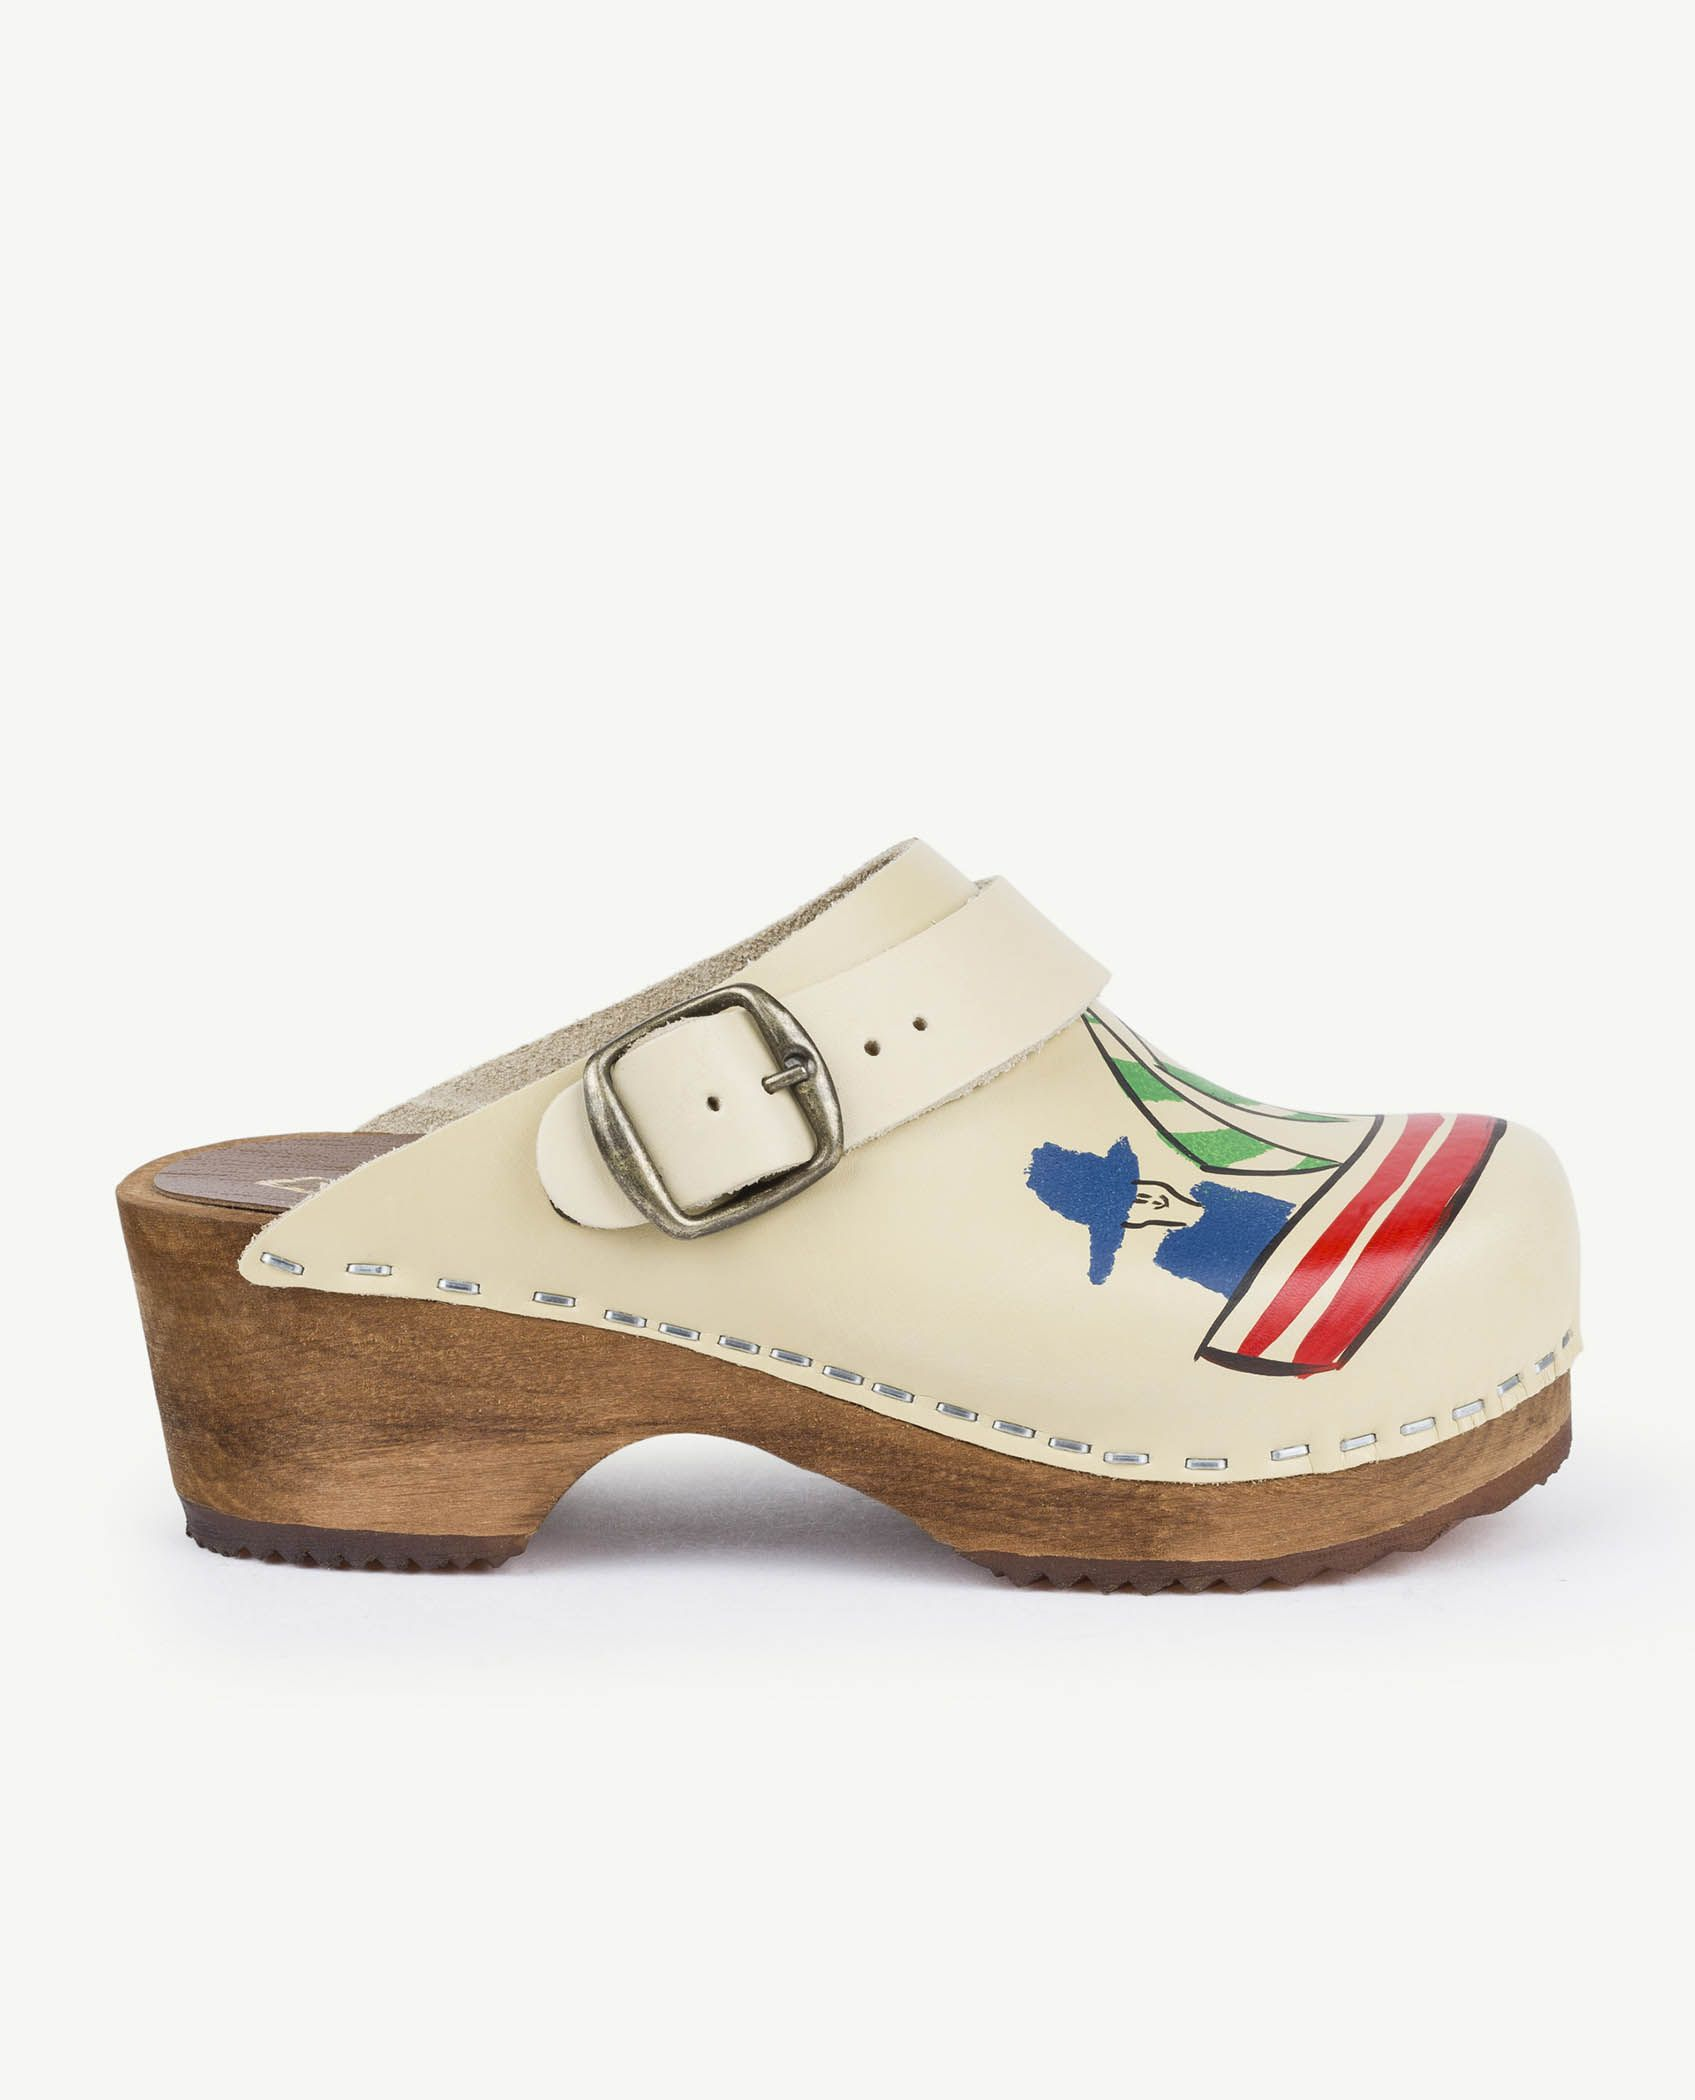 White Clogs Shoes img-3